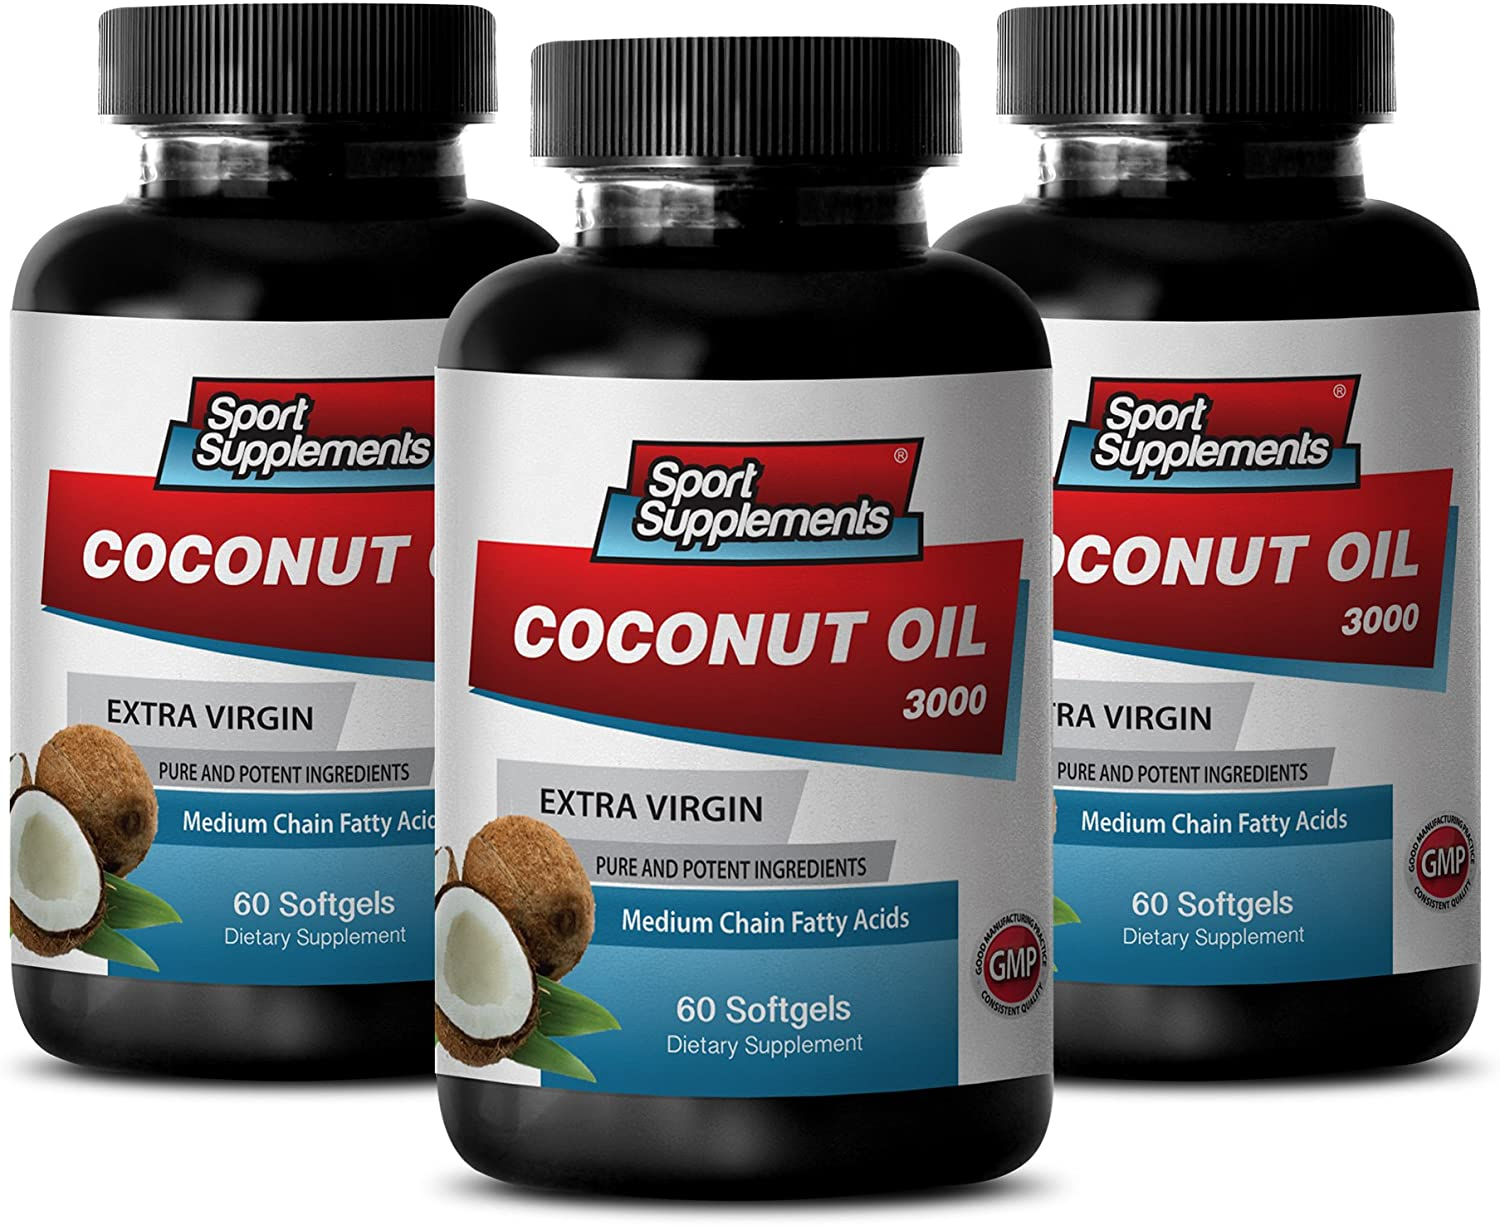 Weight Loss Men - Coconut Oil 3000MG Extra Virgin - Weight Management - 3 Bottles (180 Softgels)